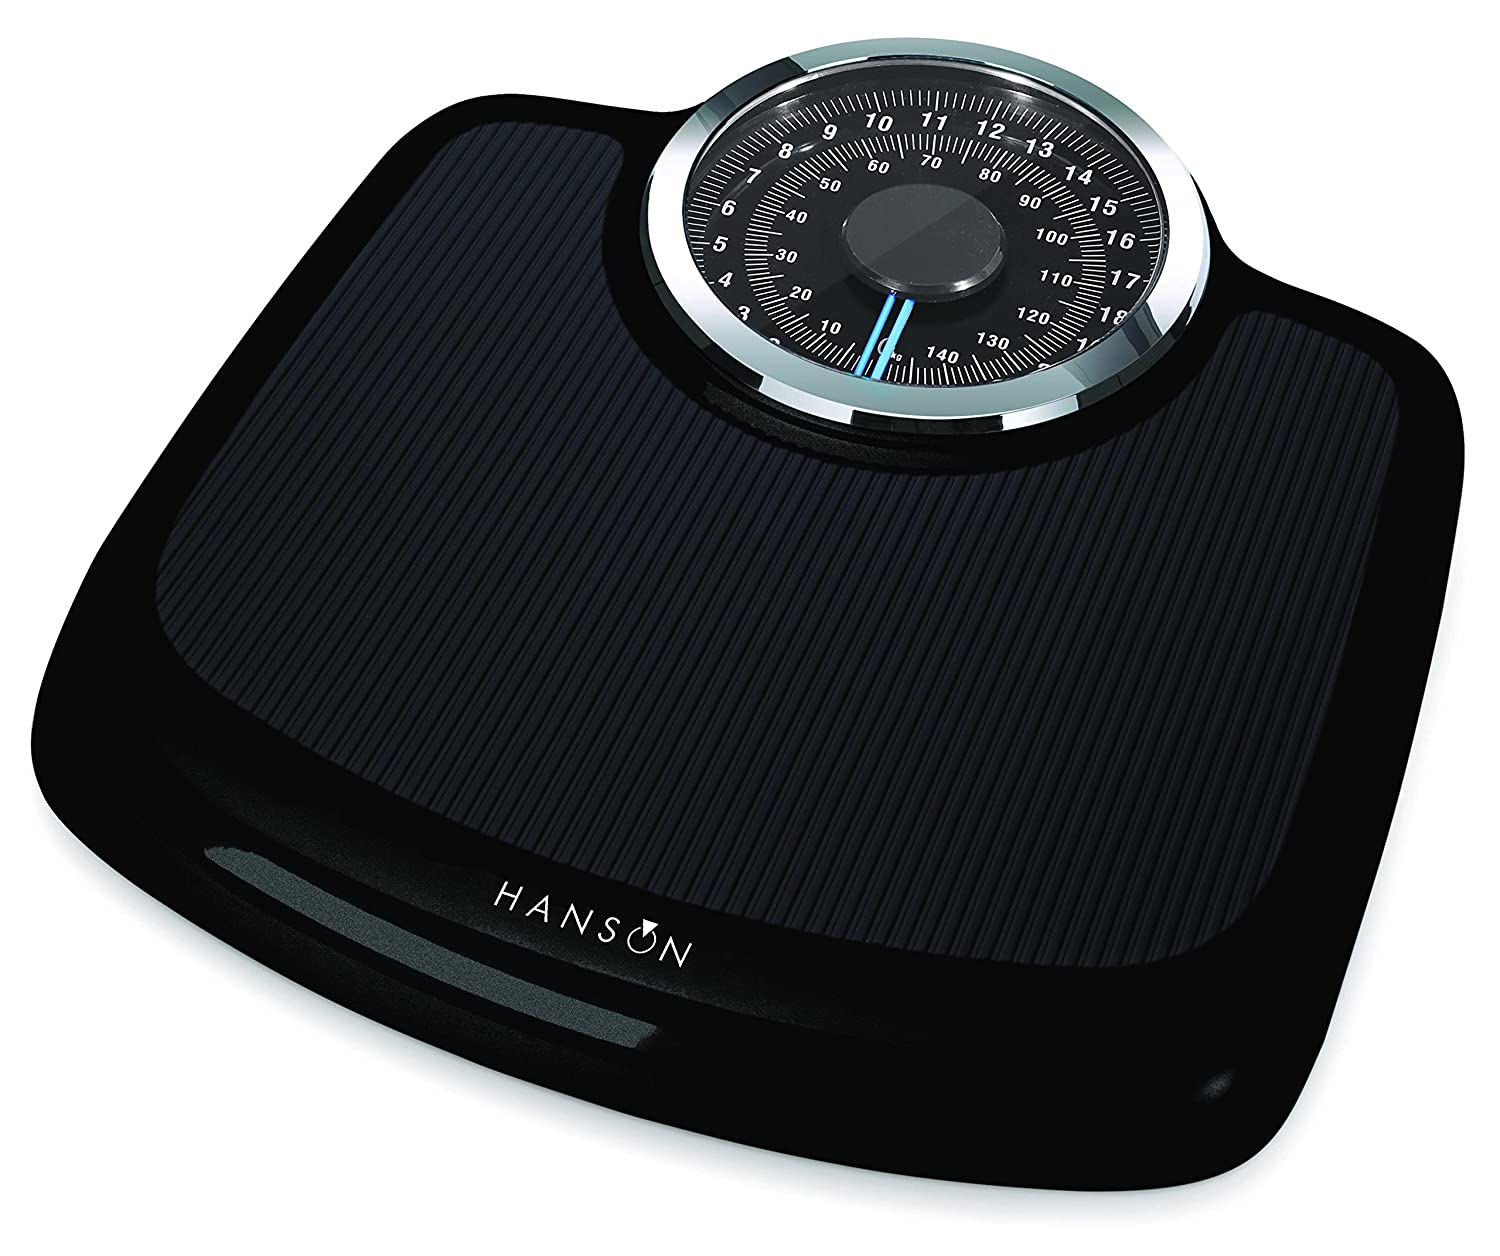 Hanson Neo Black Mechanical Bathroom Scale Terraillon 12874